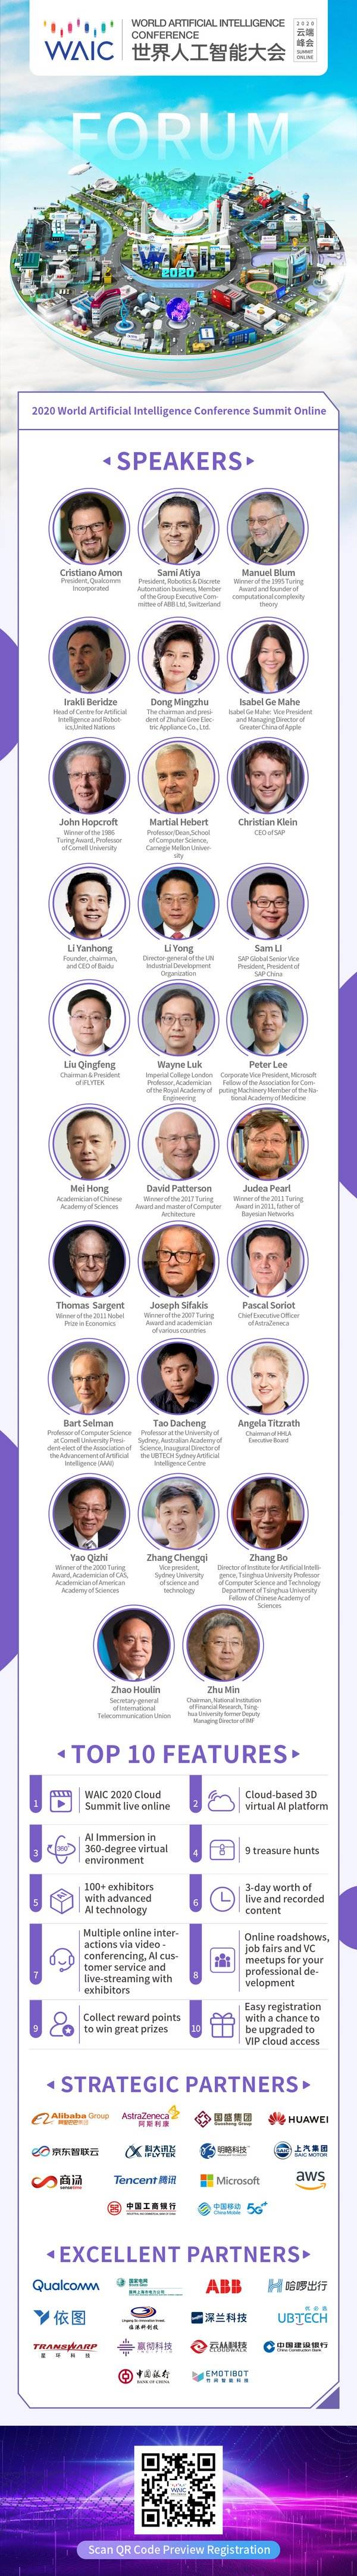 2020 World Artificial Intelligence Conference Summit Online